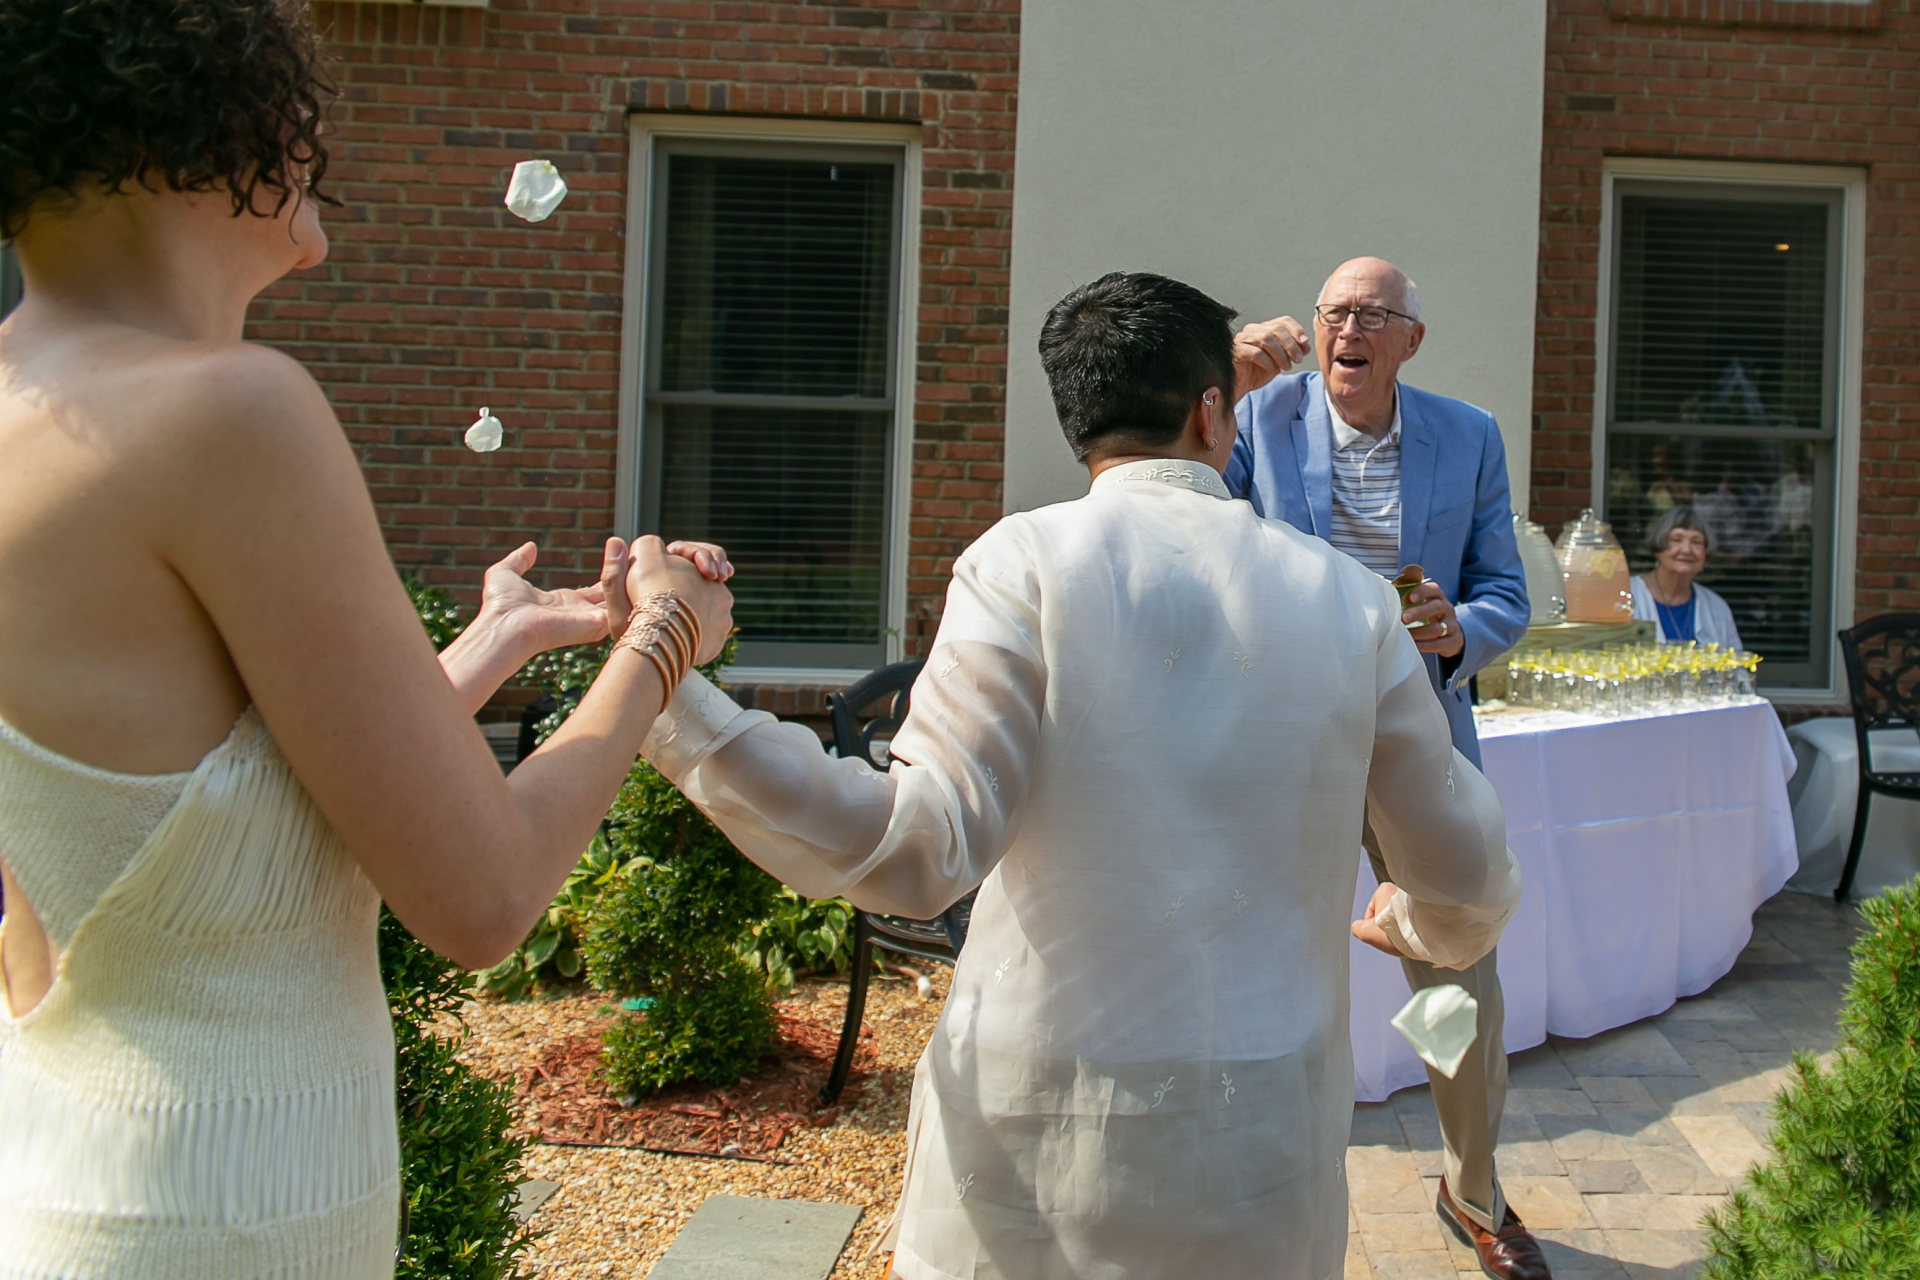 Backyard Elopement Celebration Images | grandfather throws flower petals on the couple as they leave their ceremony